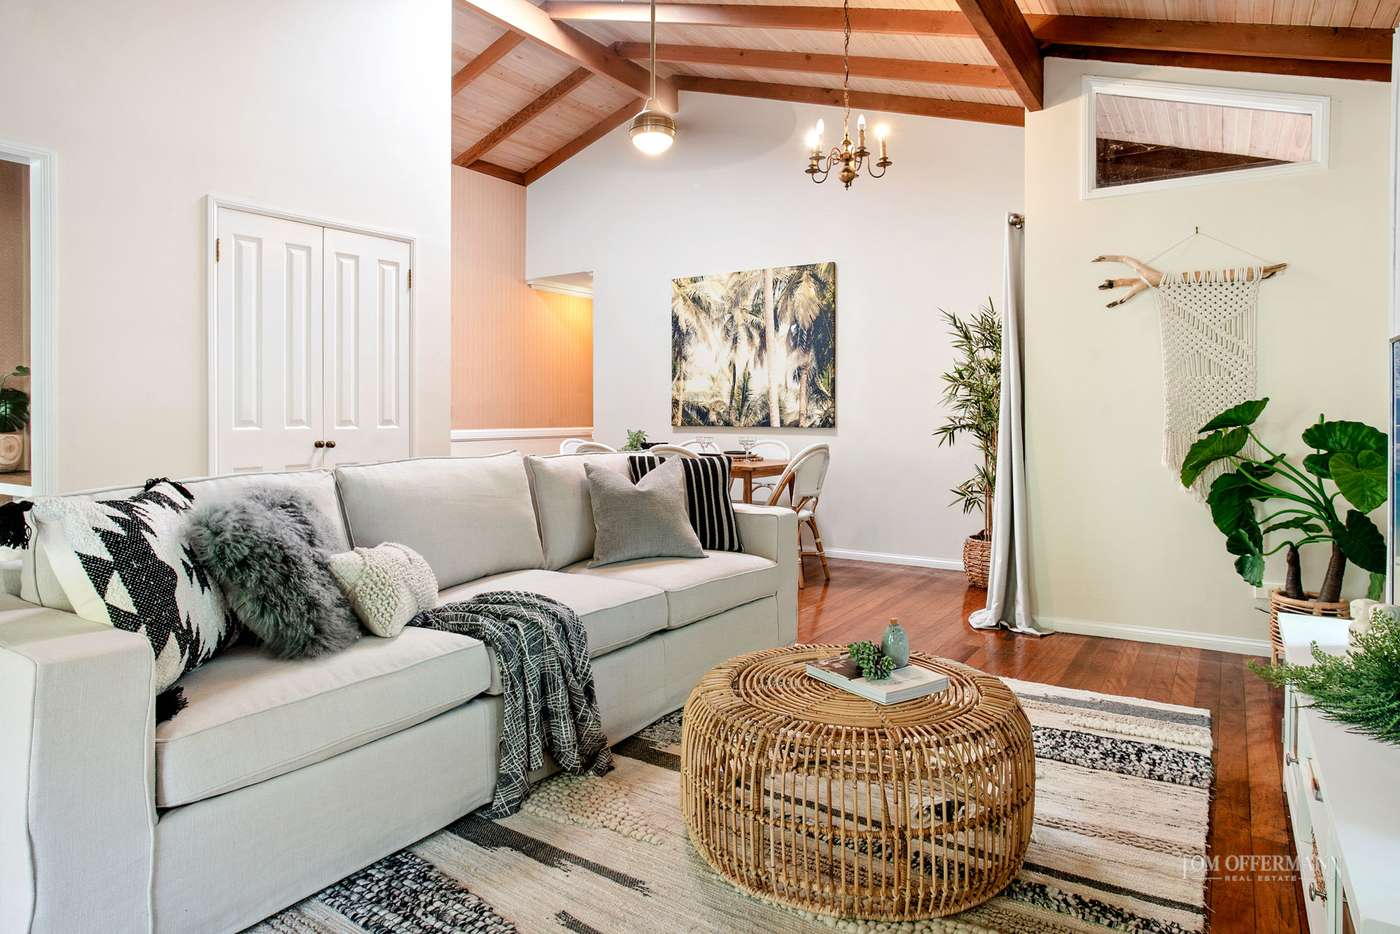 Main view of Homely house listing, 14 Leslie Drive, Noosa Heads QLD 4567